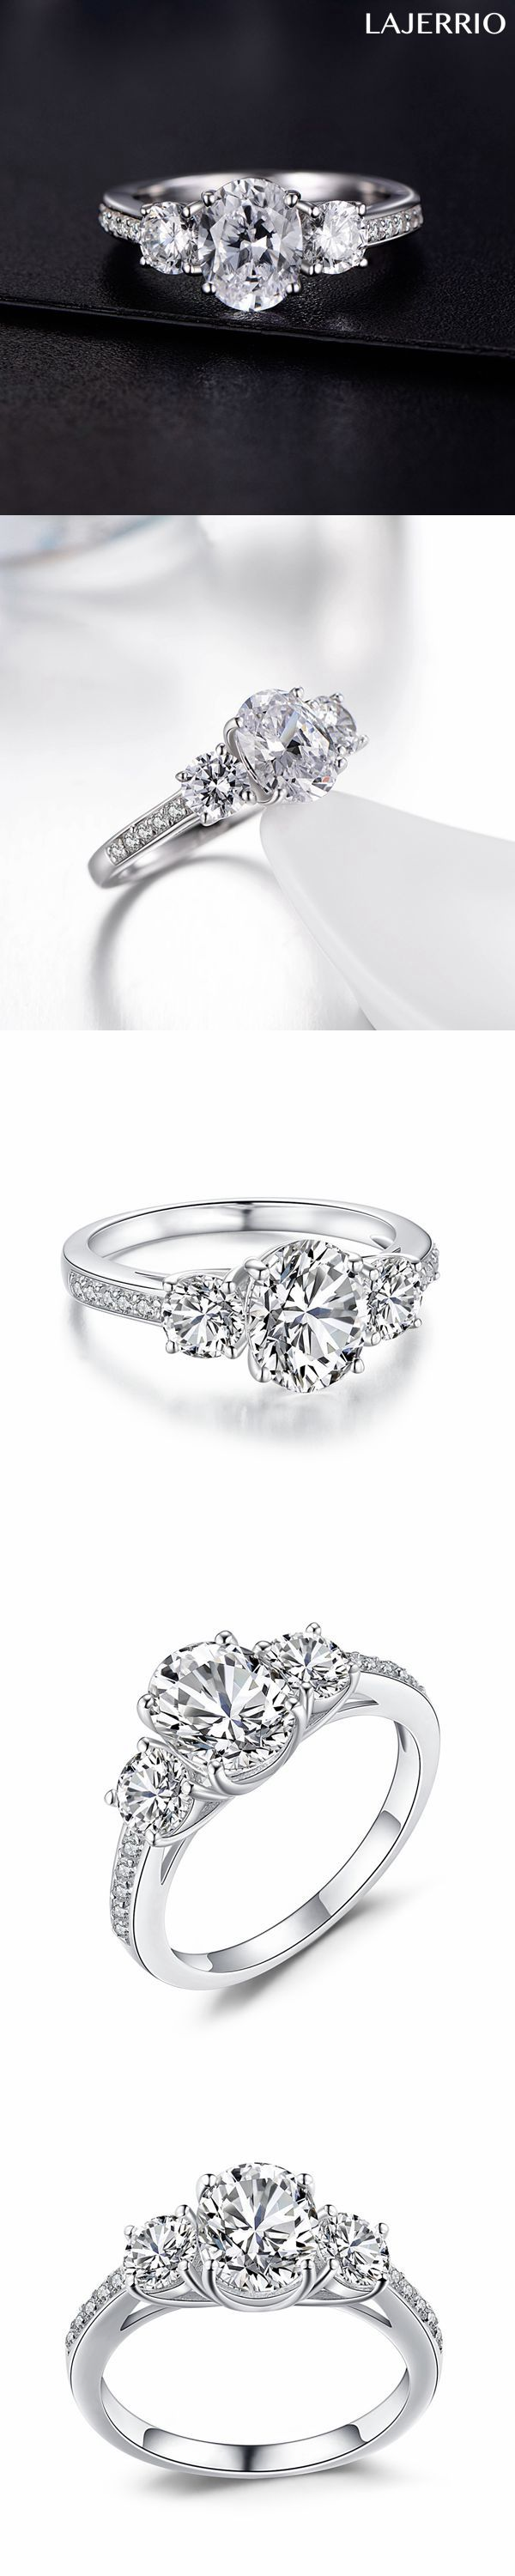 Lajerrio Jewelry Oval Cut Gemstone S925 Engagement Ring